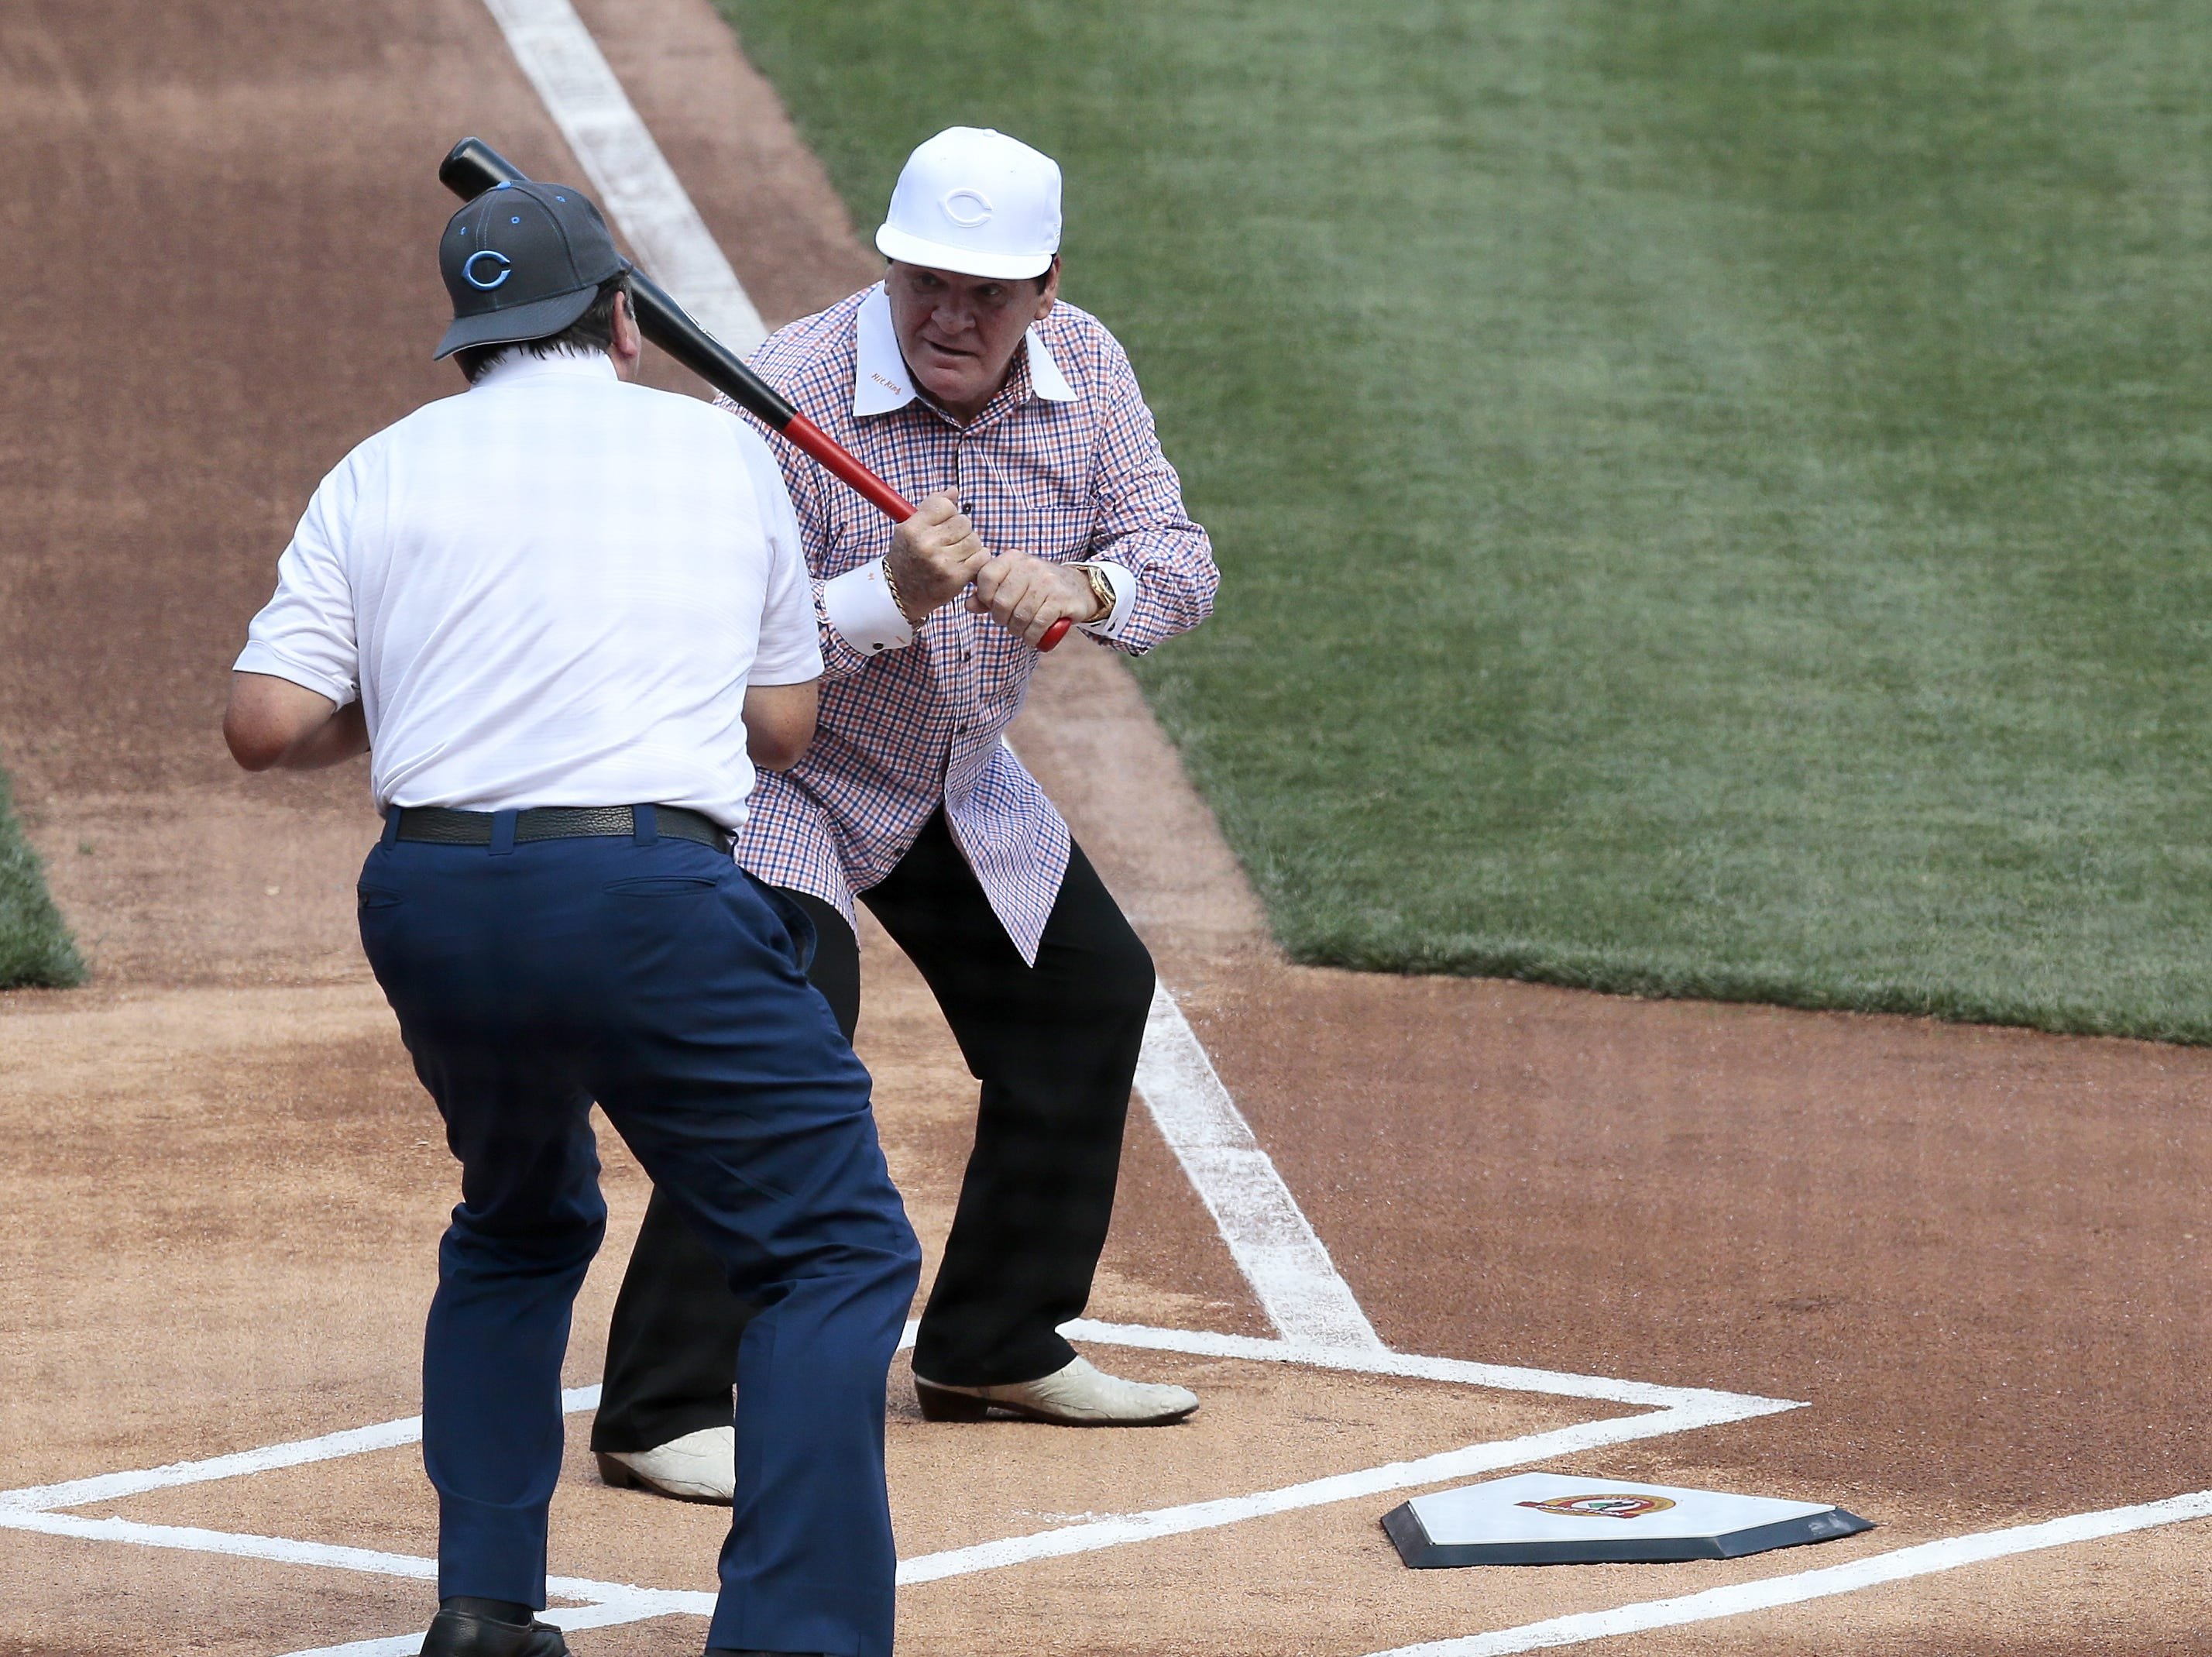 Former Reds great Pete Rose looks back to former team mate Johnny Bench during a ceremonial first pitch before the MLB National League game between the Cincinnati Reds and the San Diego Padres at Great American Ball Park in downtown Cincinnati on Saturday, June 25, 2016.